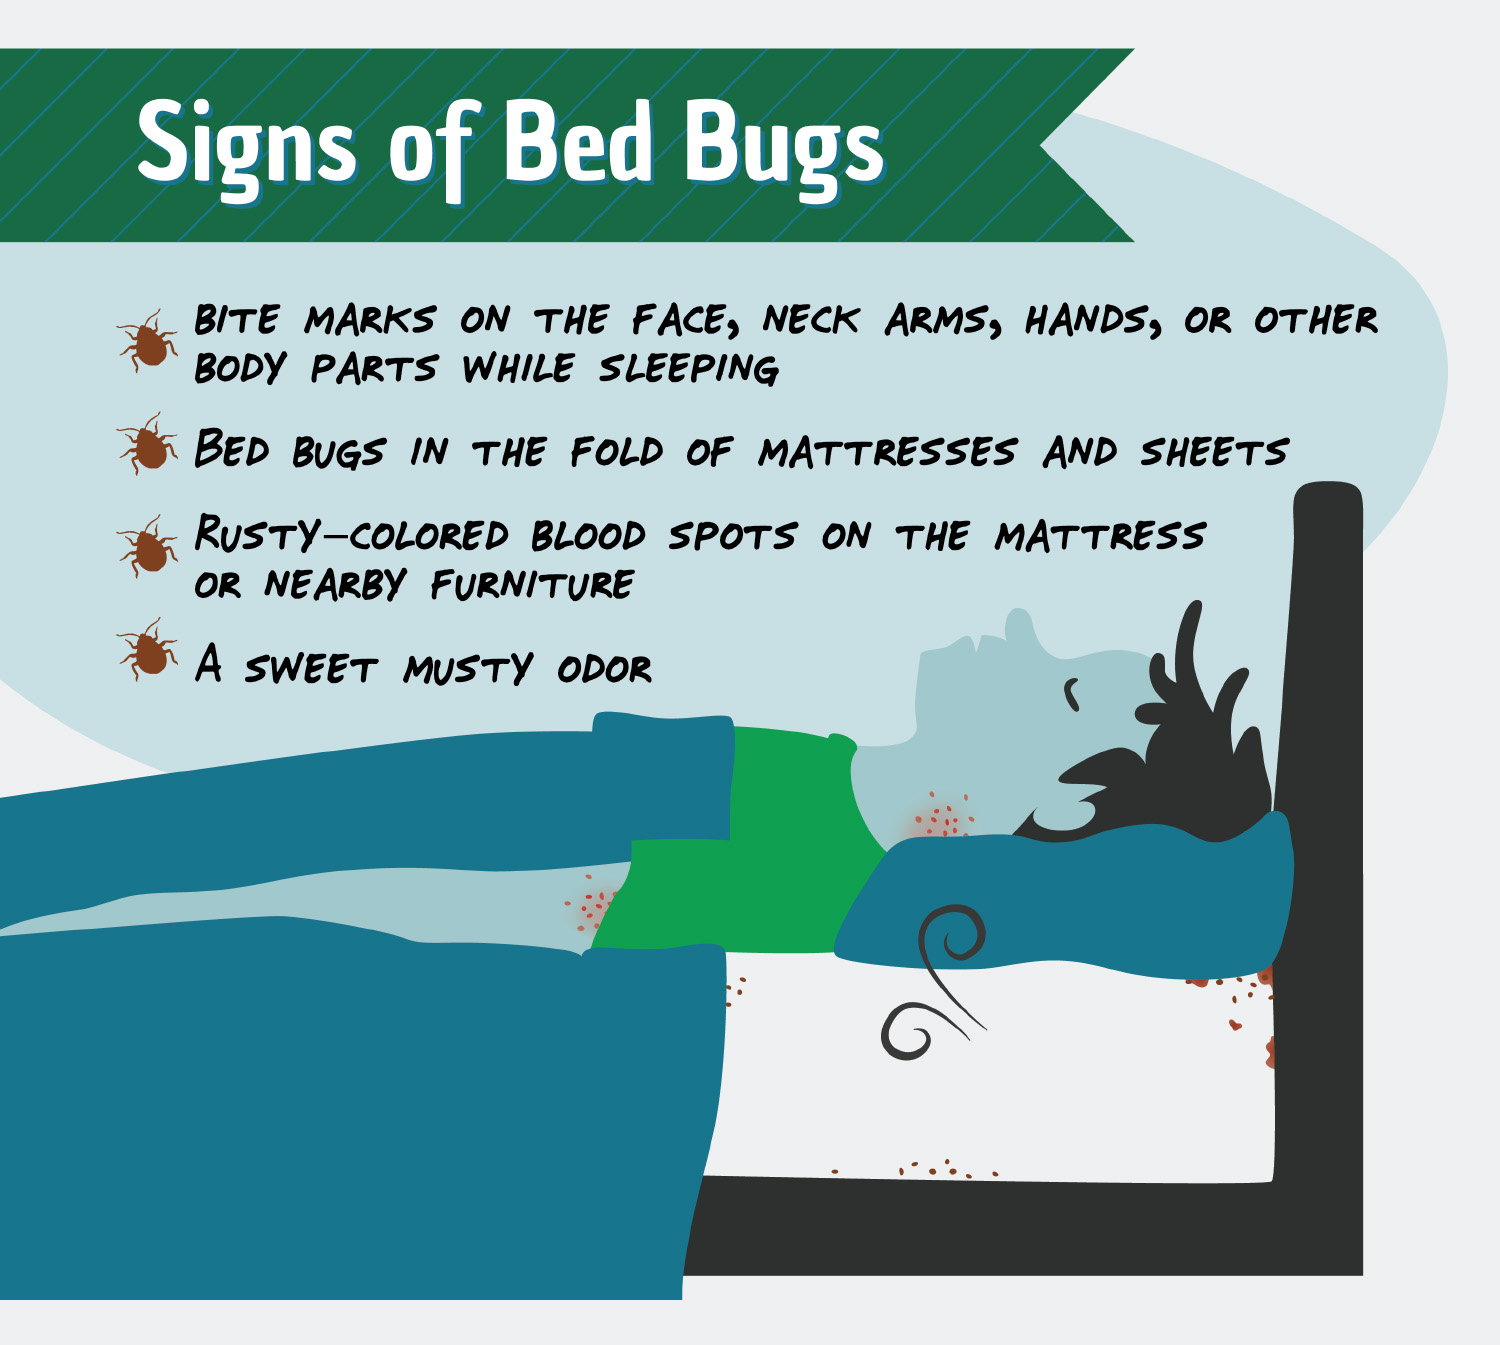 Bed Bug St. Louis in St. Louis, Missouri Offers Bed Bug Detection Services